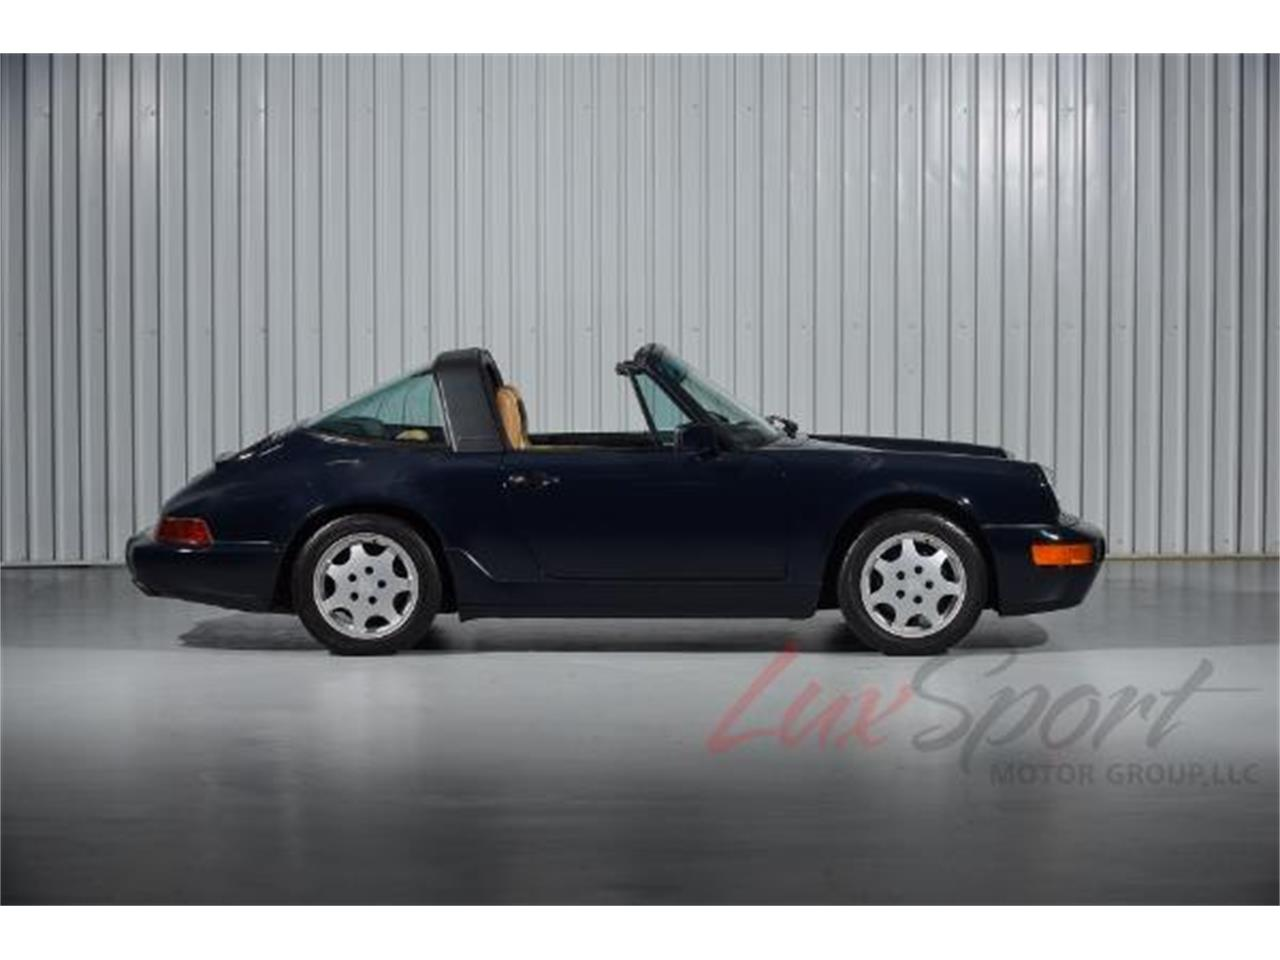 Large Picture of 1990 Porsche 964 Carrera 2 Targa located in New York - $59,995.00 - MNZP